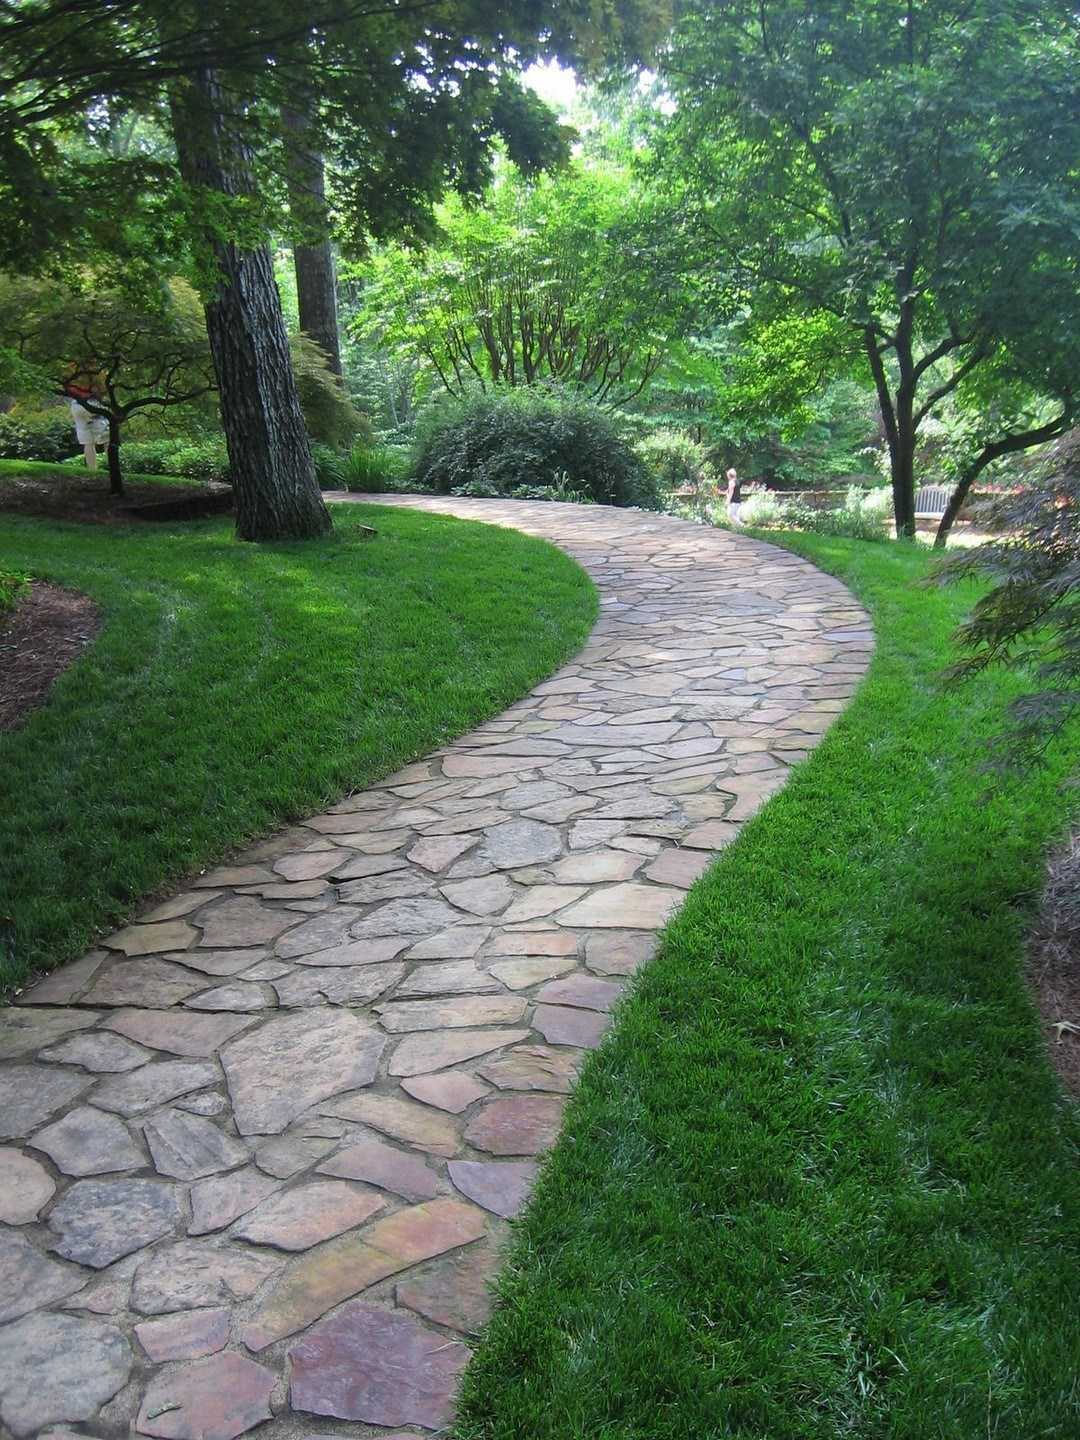 40 Simply Amazing Walkway Ideas For Your Yard - Page 12 of ... on Backyard Walkway Ideas id=51468